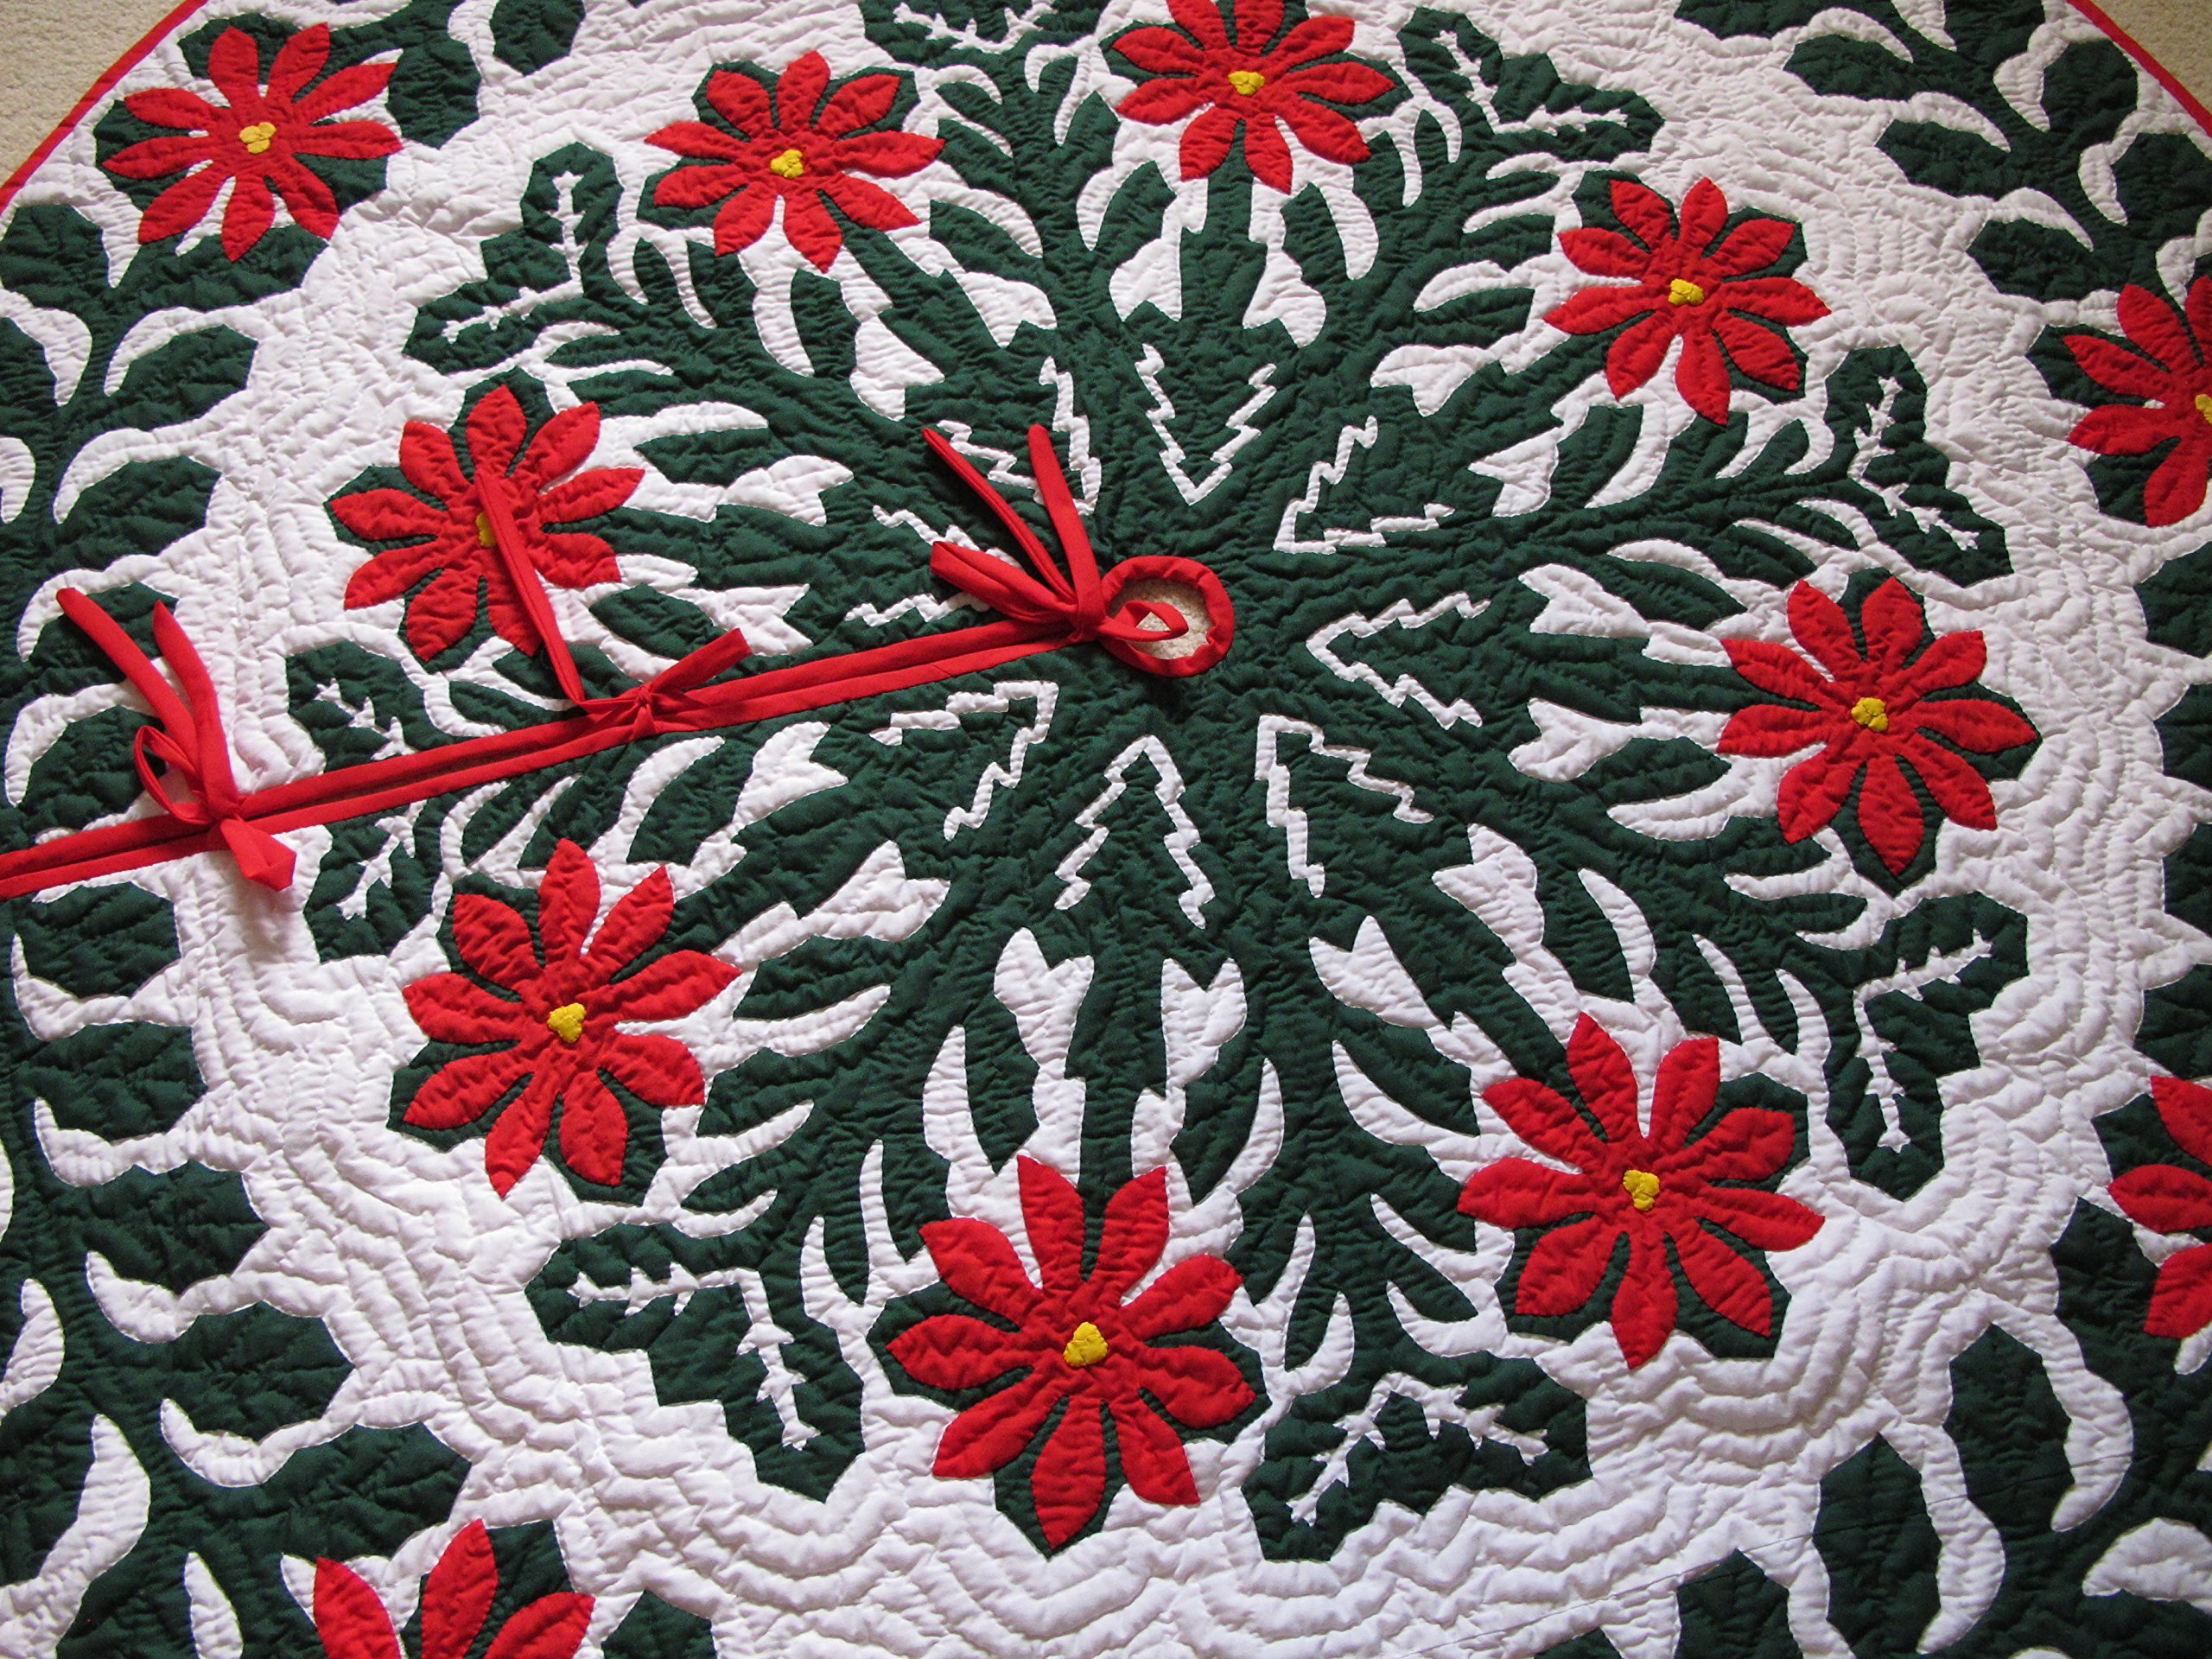 Hawaiian Quilt 100% Hand Quilted and 100% Hand Appliqued Christmas Tree Skirt 60'' by Hawaiian Quilt Wholesale (Image #2)